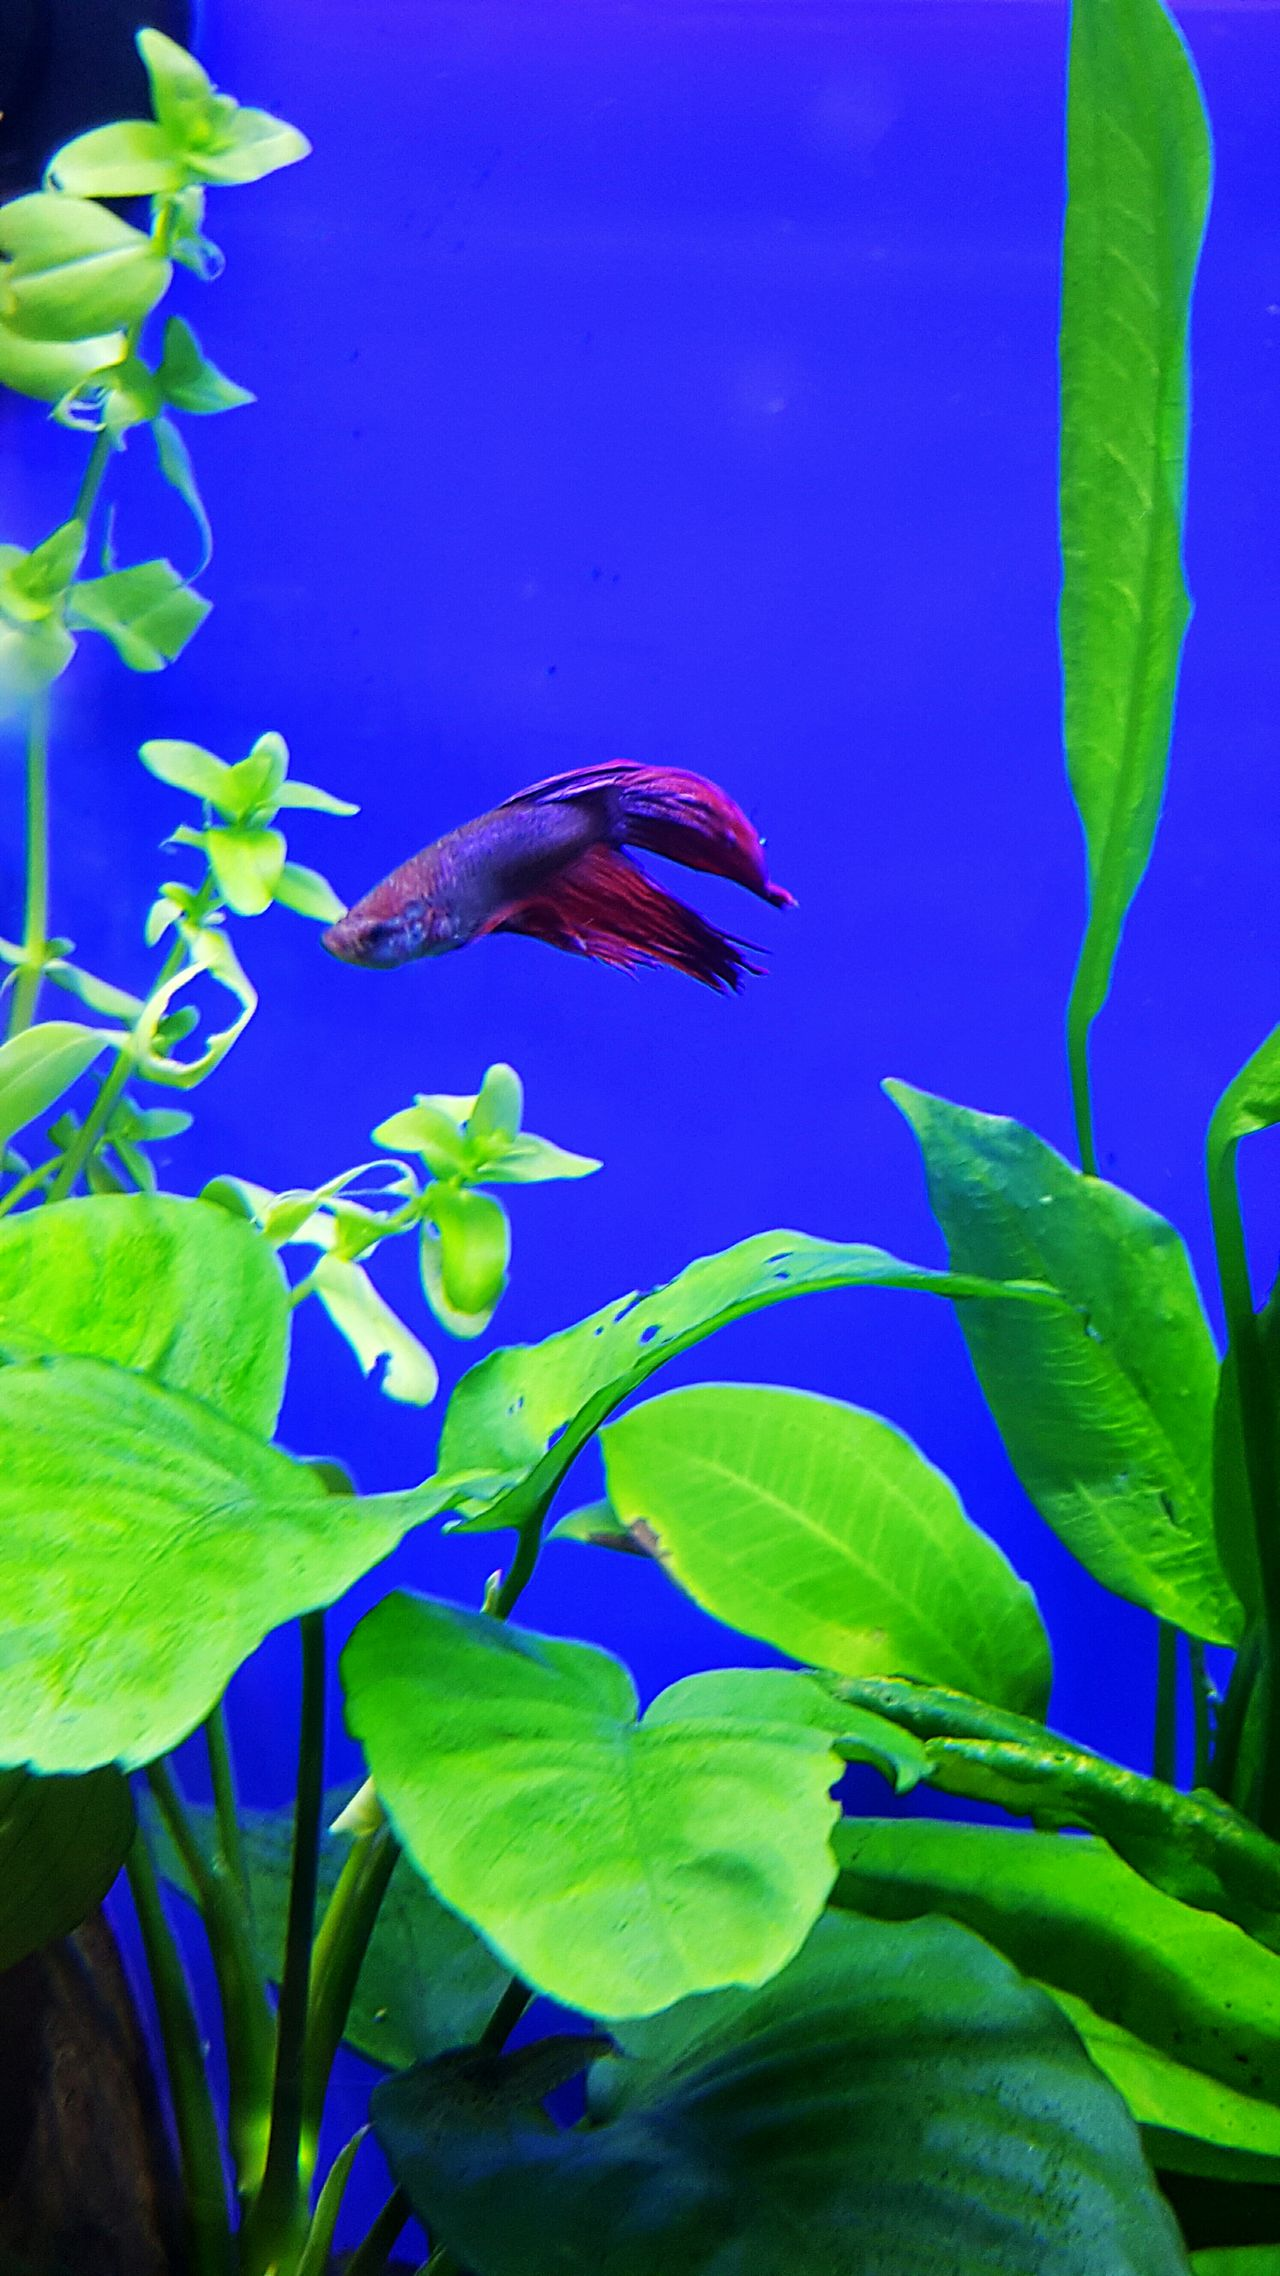 Fish Red Fish Fancy Fish Underwater Photography Pet Green Plants Living Blue Background Beauty In Nature Beautiful Nature Beautiful Fish Tank For Sale EyeEm Best Shots EyeEm Nature Lover Eyem Best Shots Eye4photography  EyeEmBestPics EyeEm Best Shots - Nature Eyemphotography